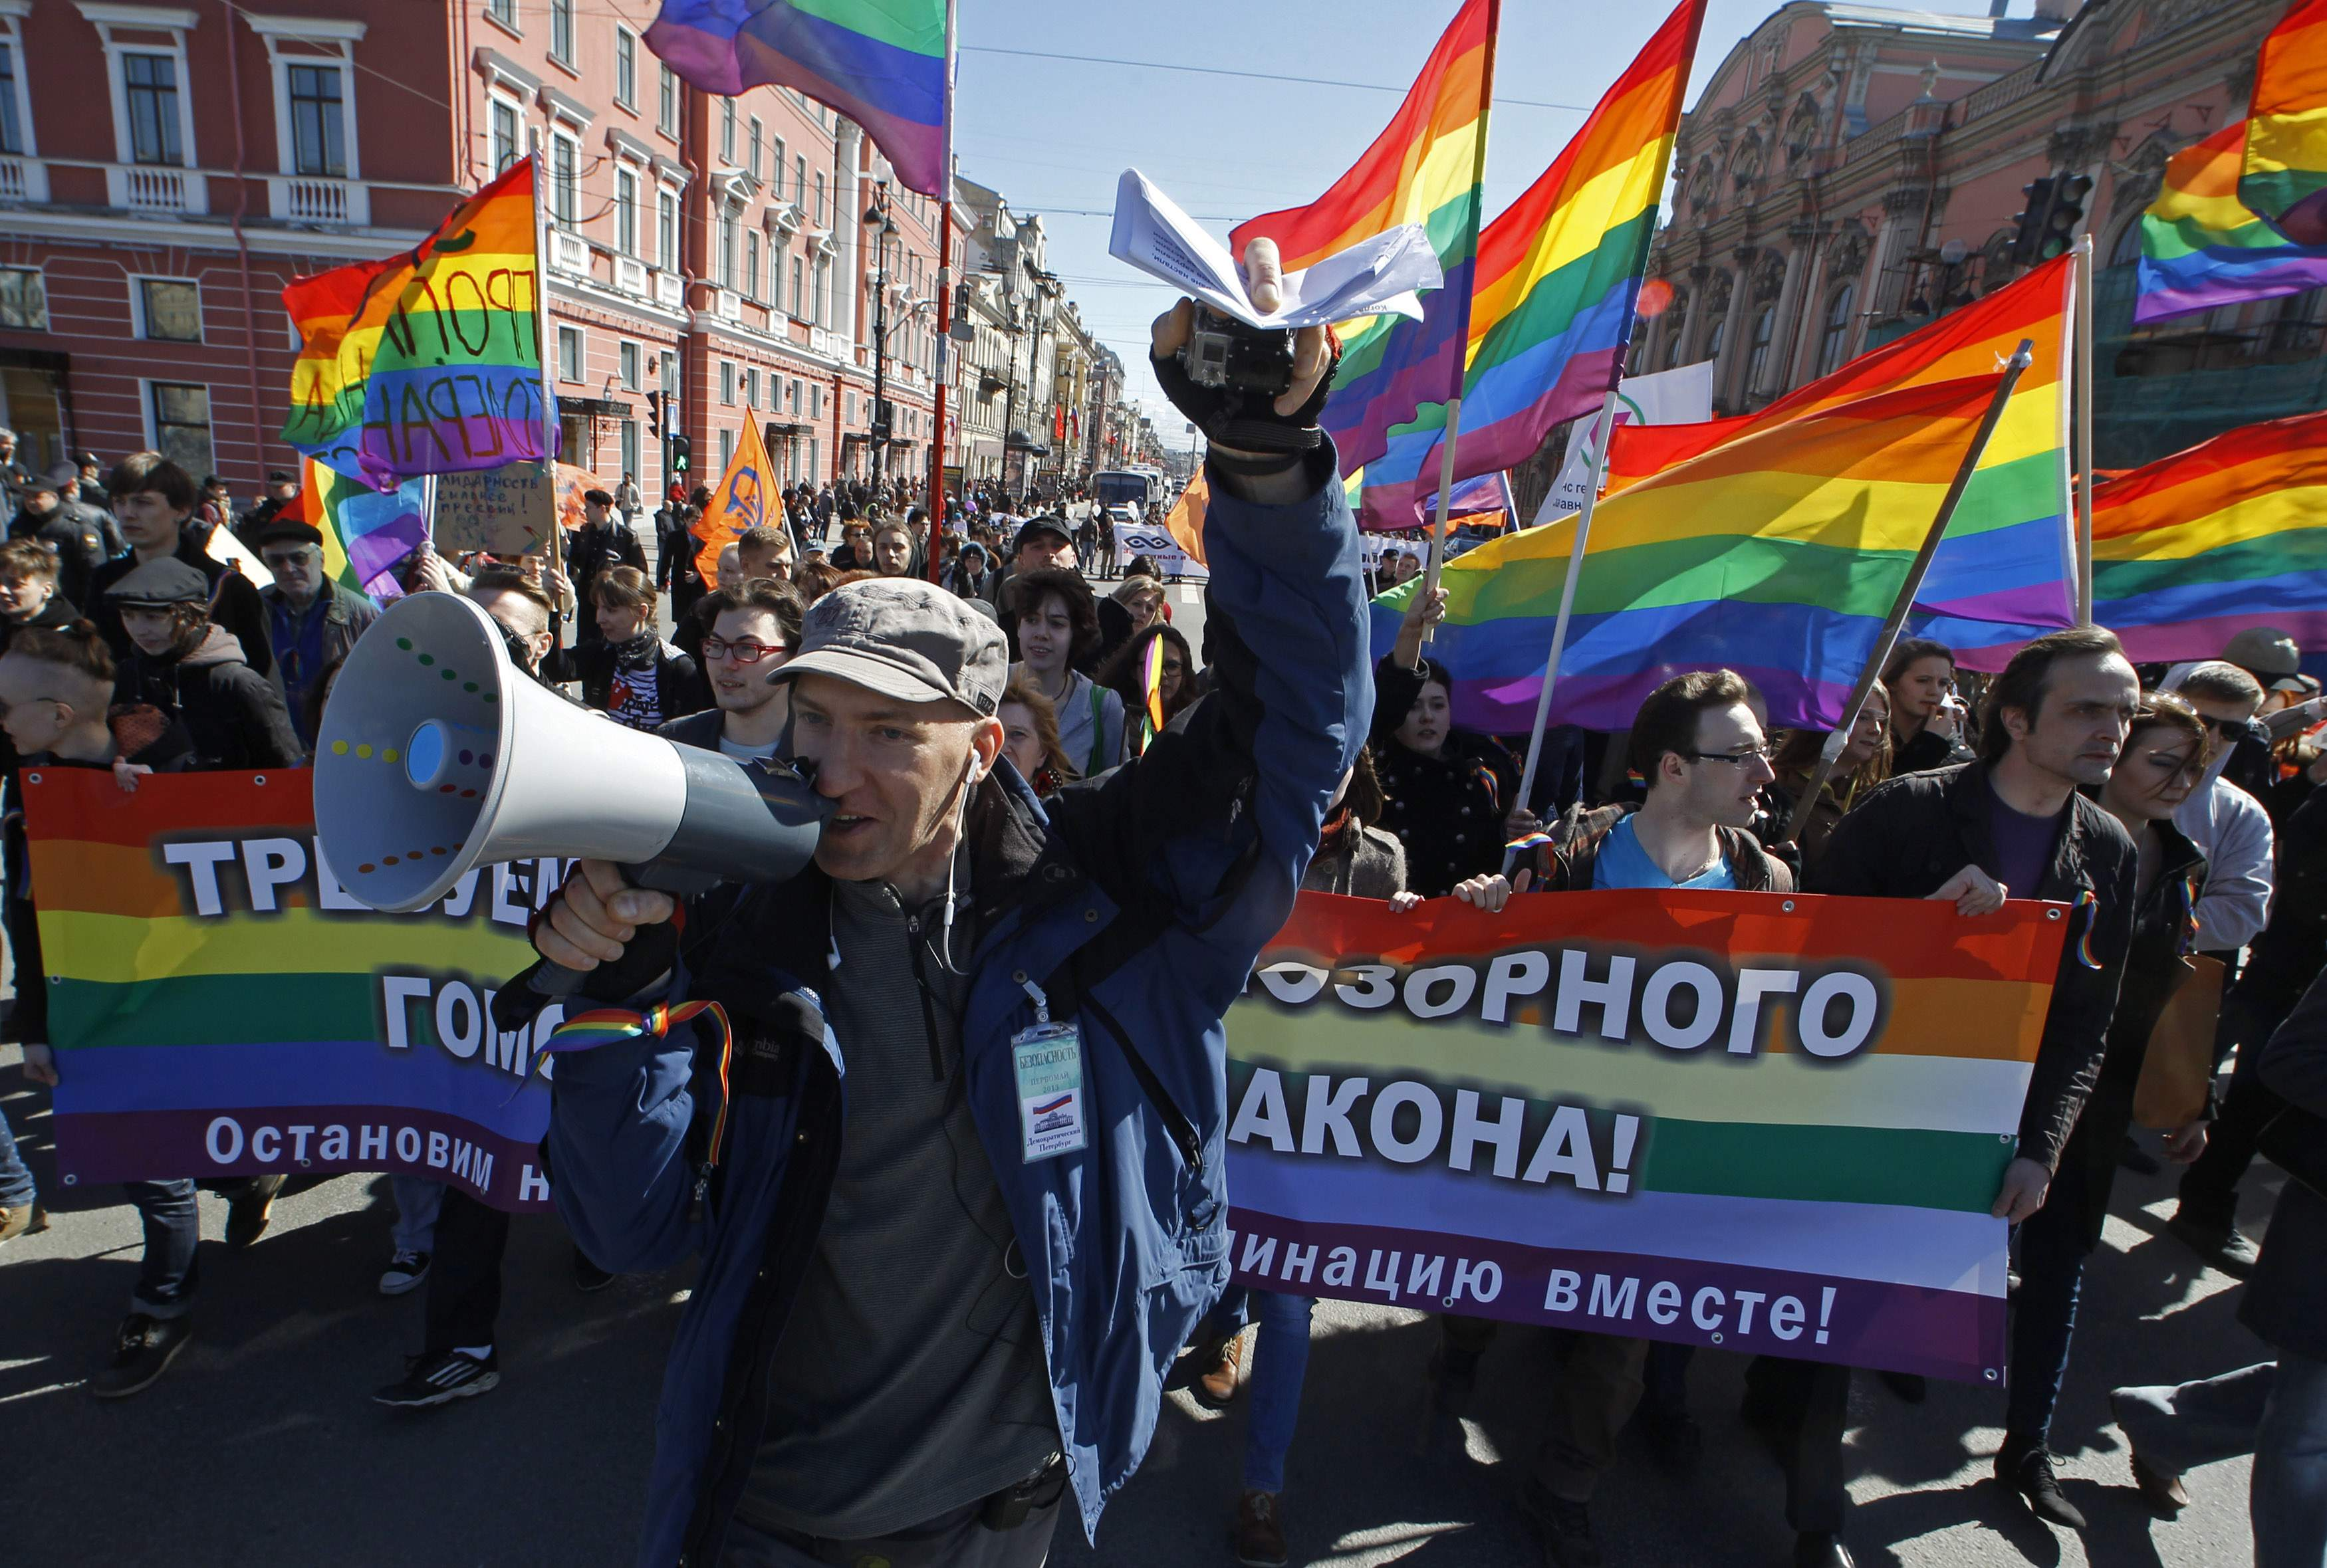 Russian man tortured to death for 'being gay'